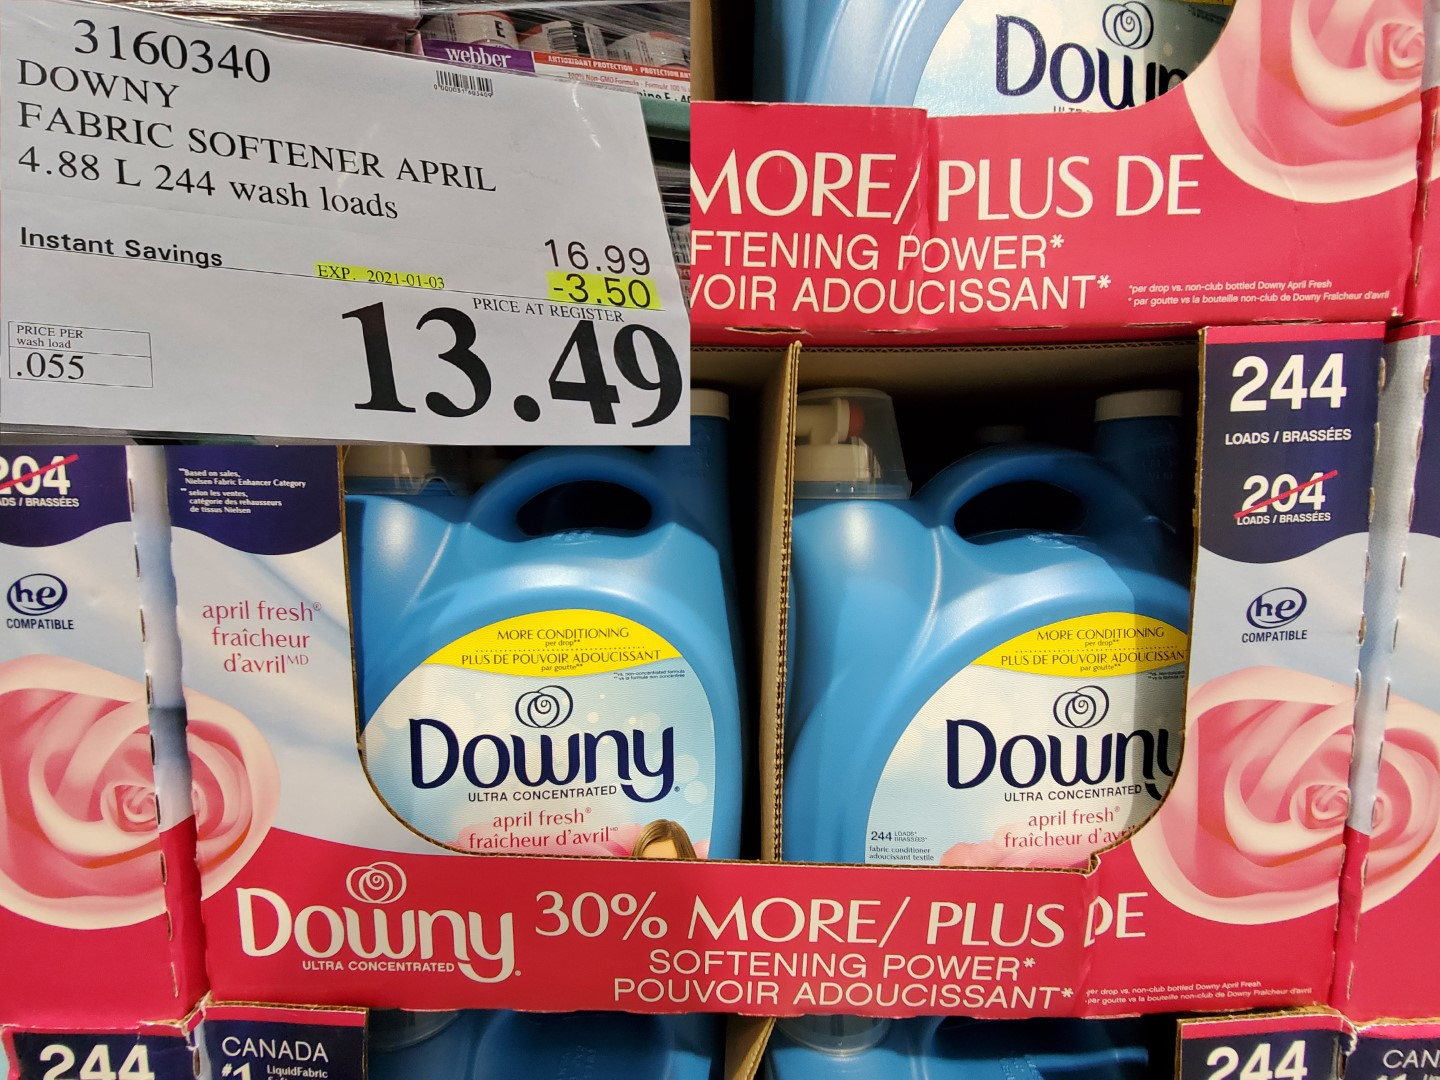 downy fabric softener